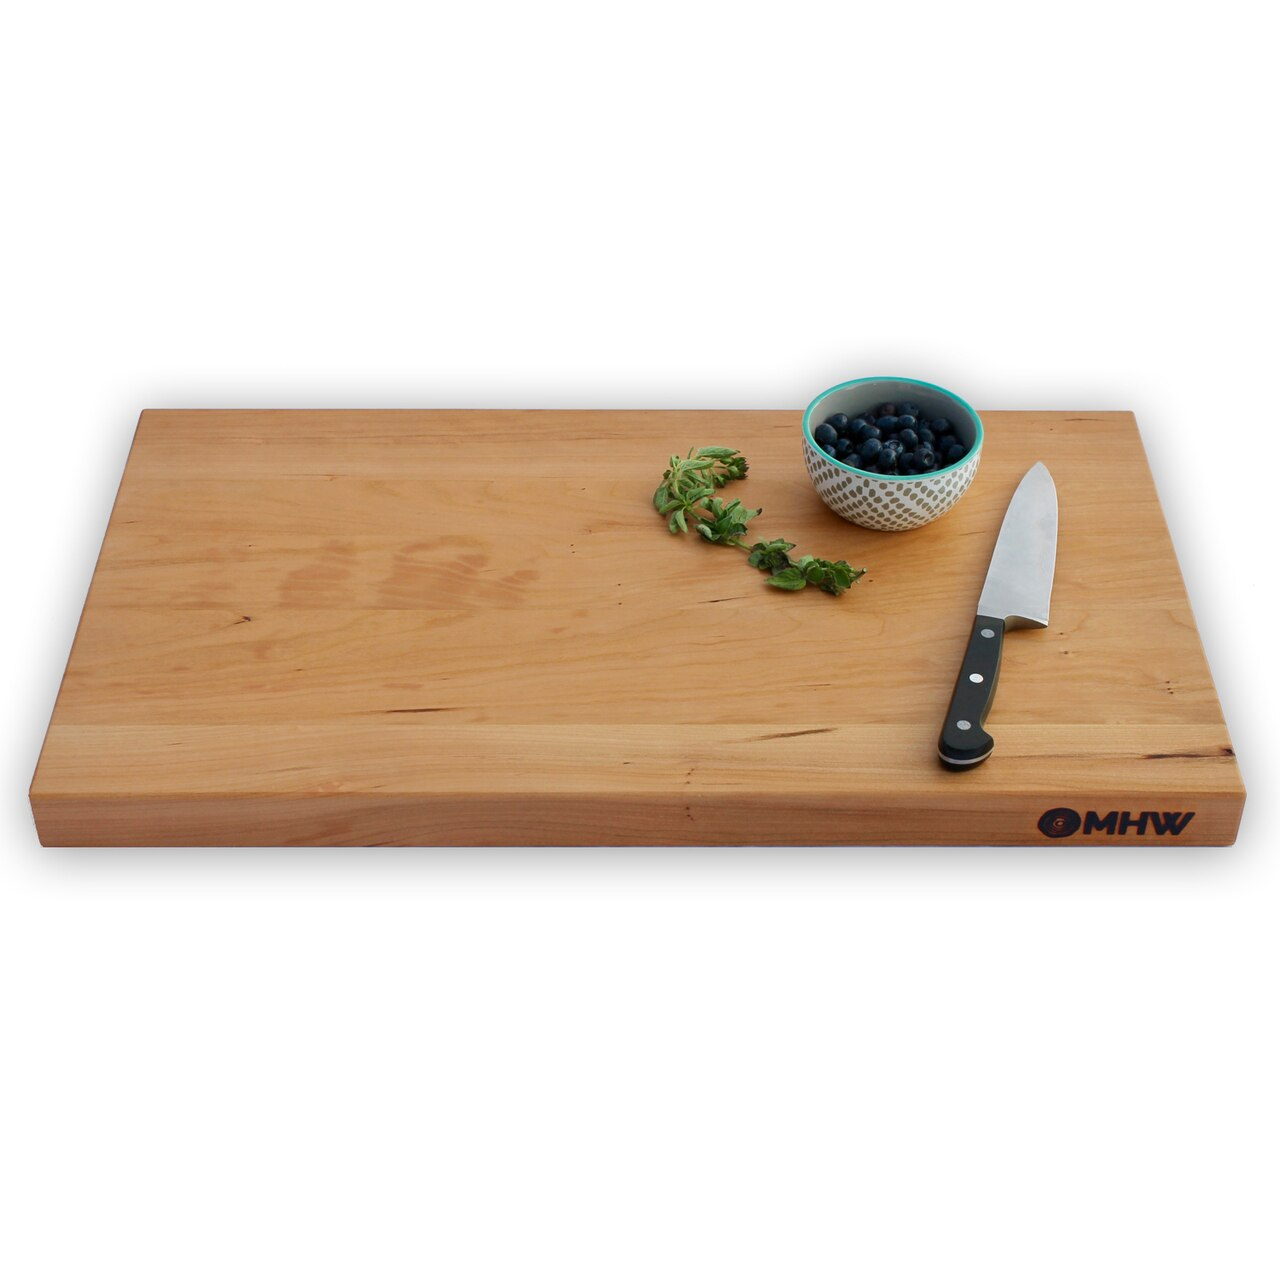 12x20 Cherry Wood Cutting Board - wFREE Board Butter!